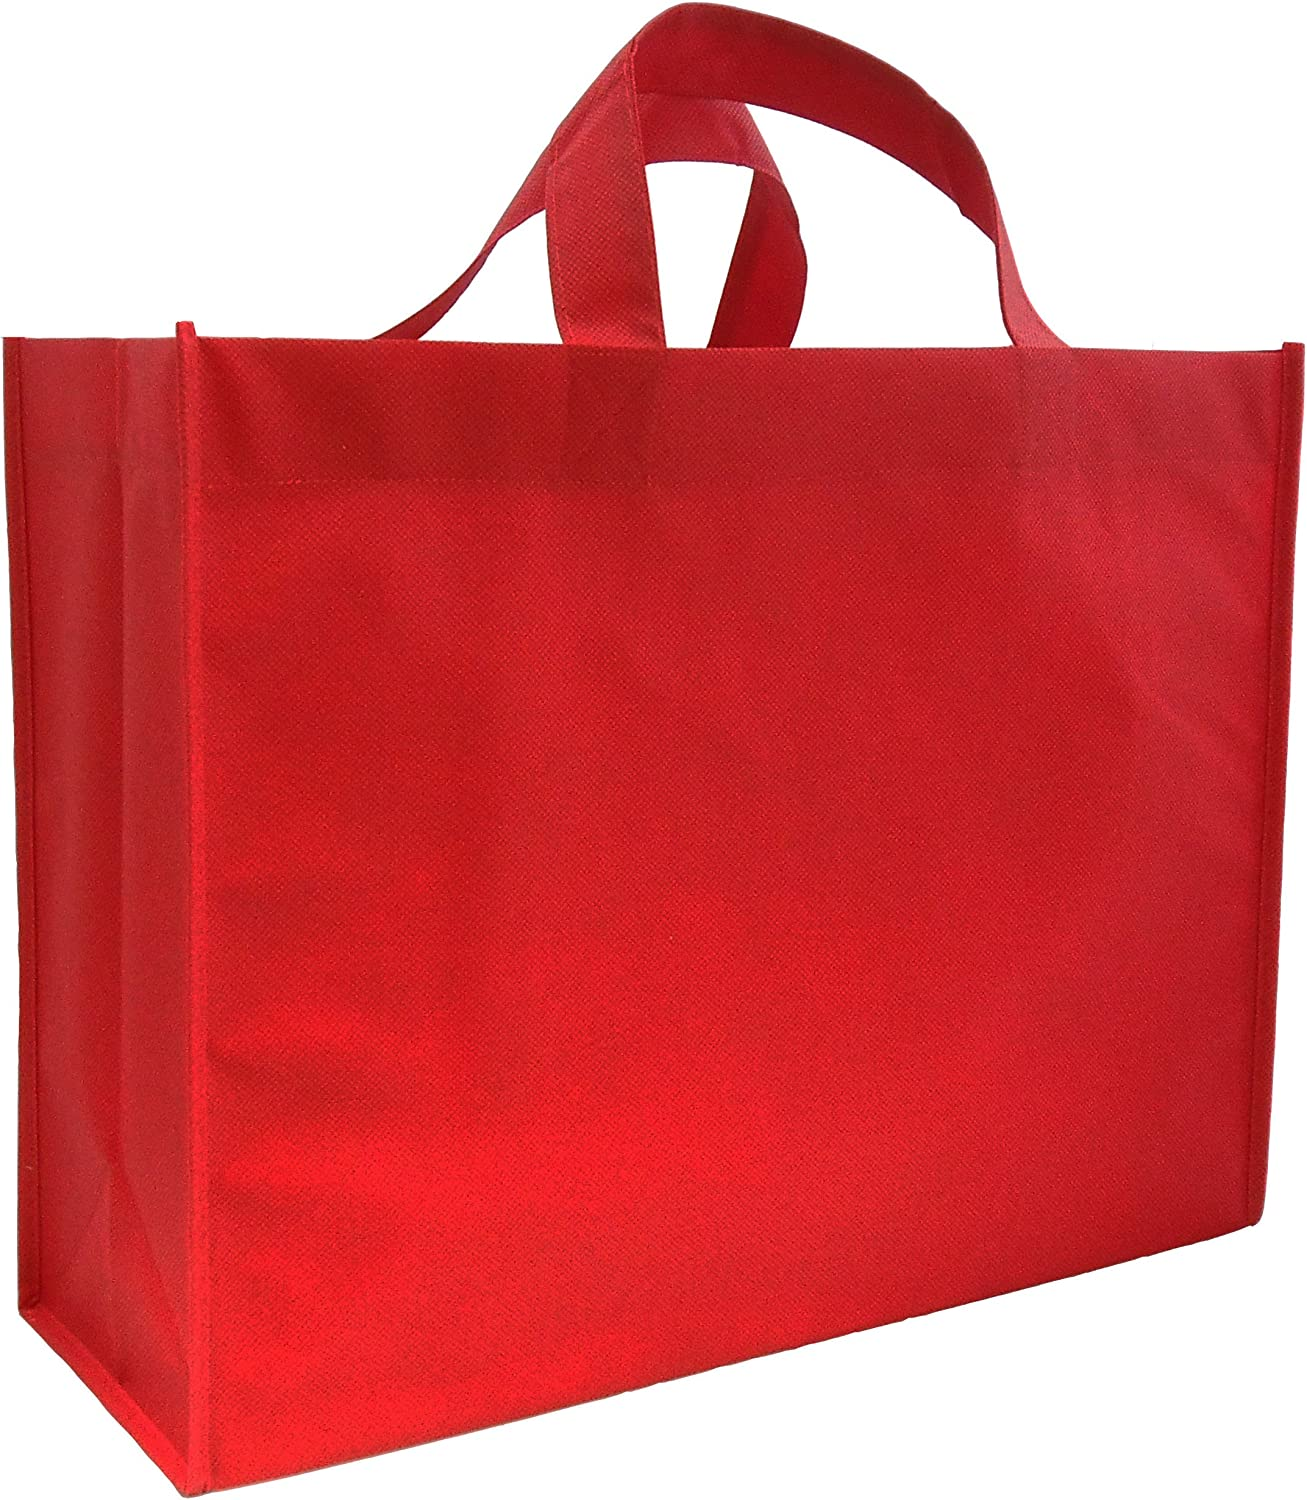 Reusable Gift Bags, Large, rojo by CYMA